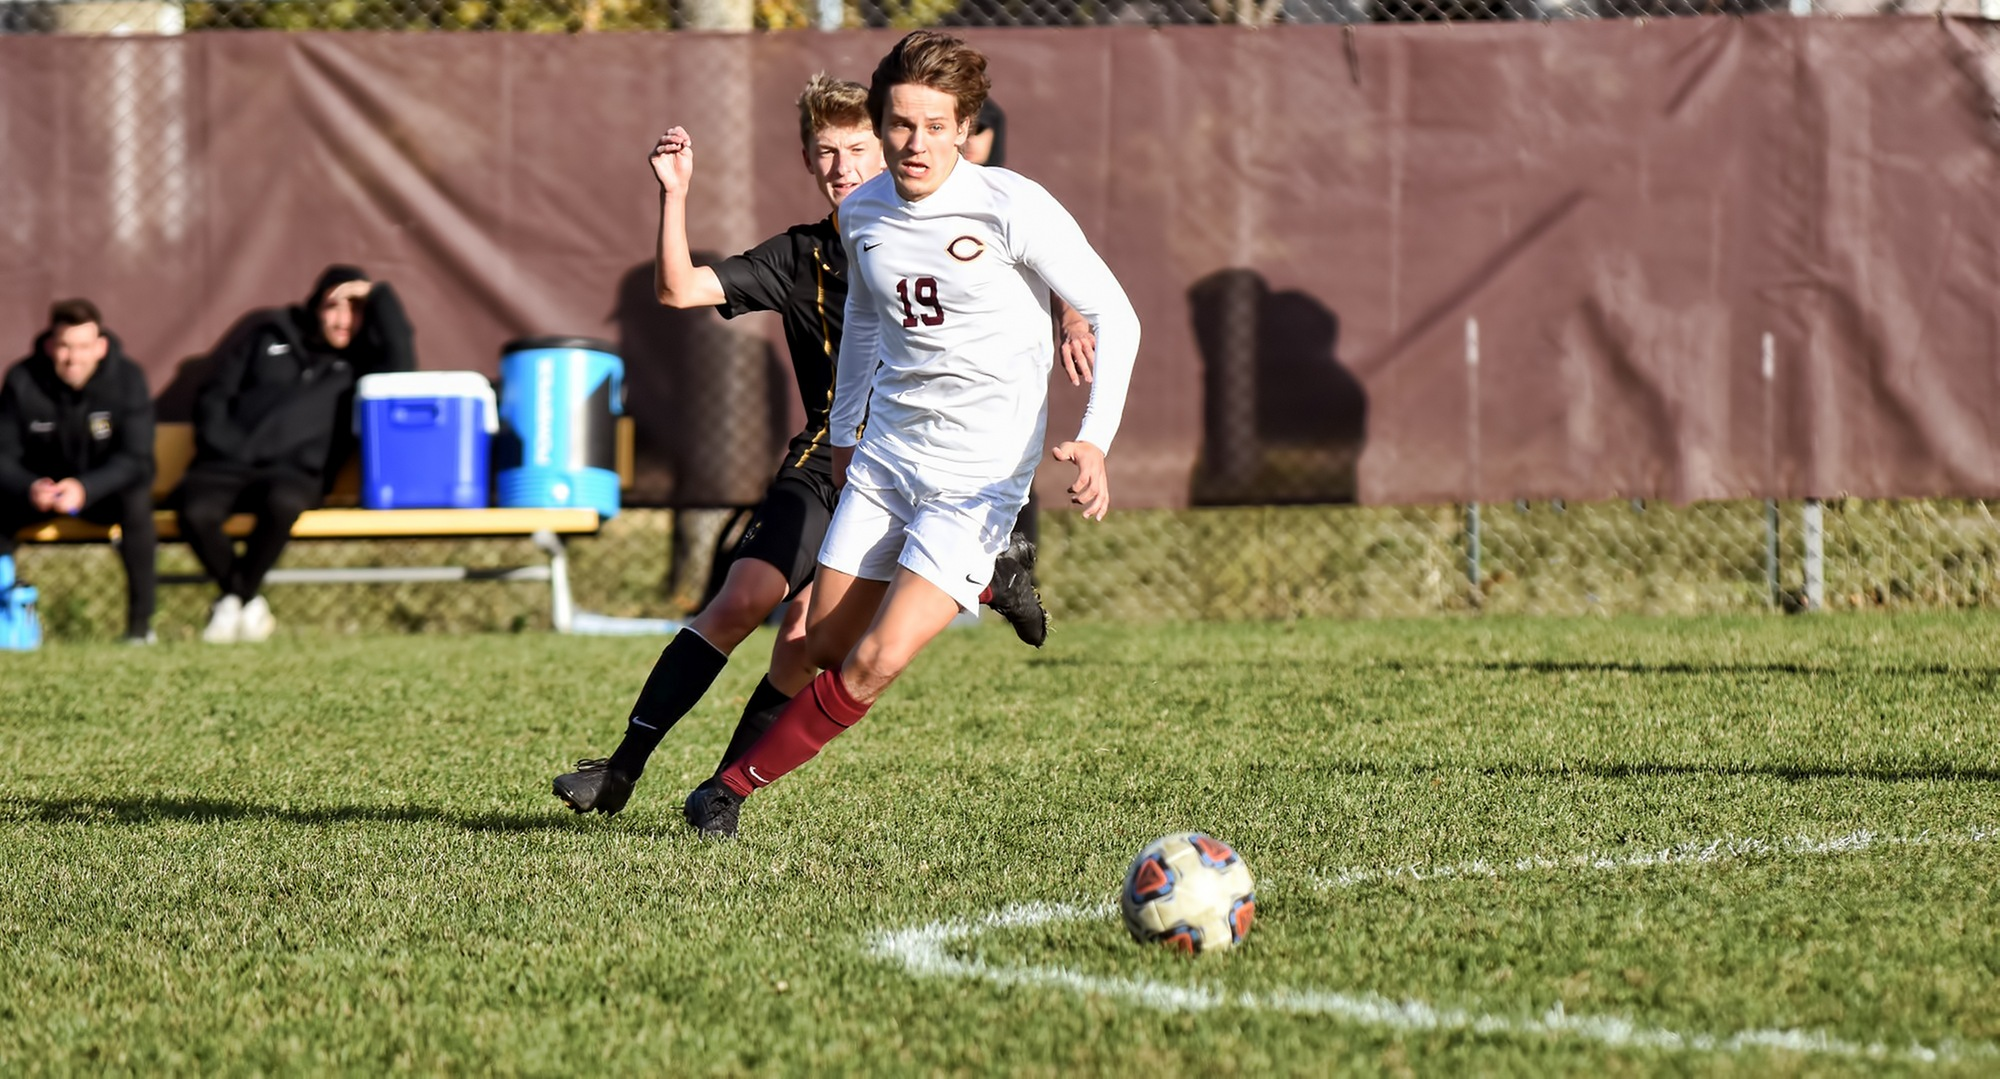 Freshman Sondre Rygg chases the ball in the middle of the field during the second half of the Cobbers' game with Gustavus.